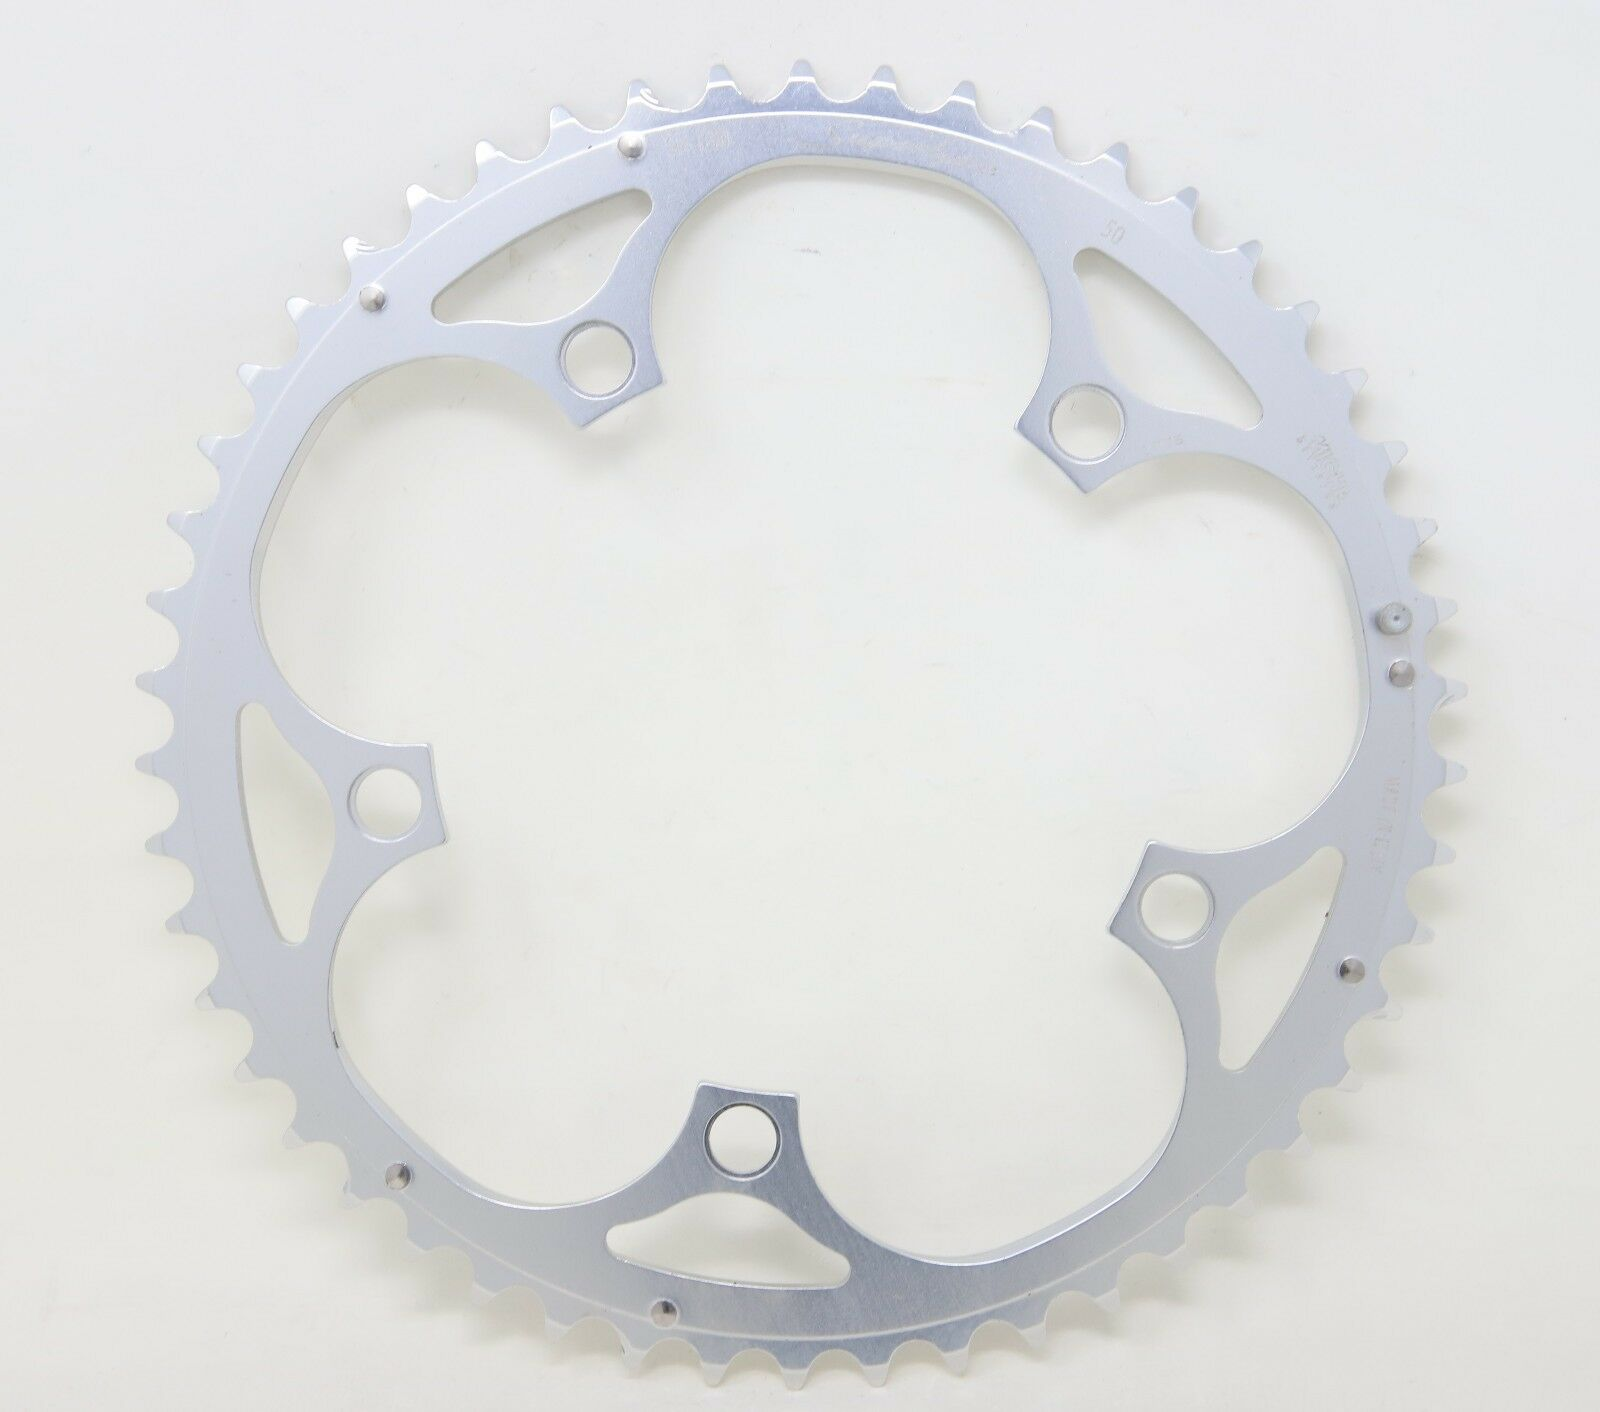 MICHE SUPERTYPE SH130 10S  10 SPEED CHAINRING 50T BCD 130MM 80S VINTAGE  low price